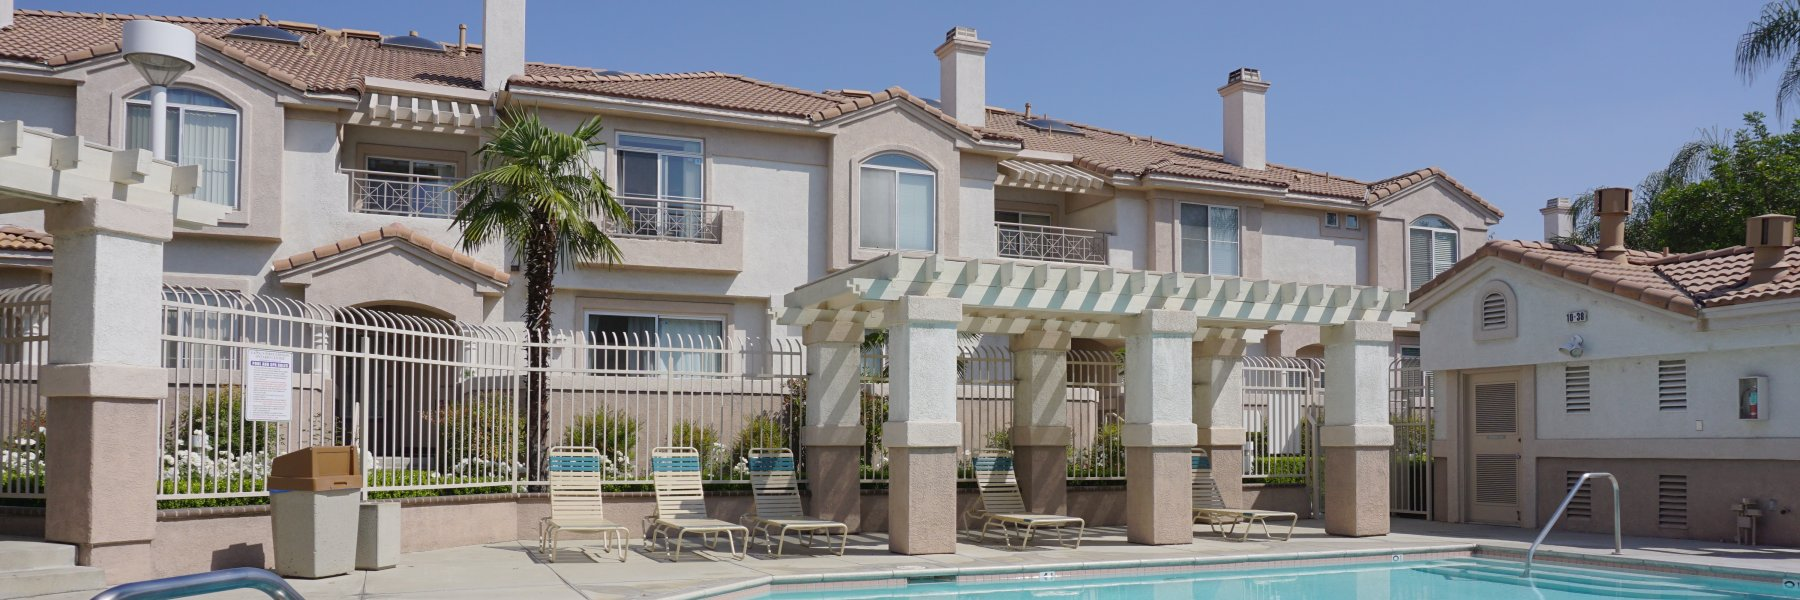 Laing's First Edition is a community of attached homes in Ontario California